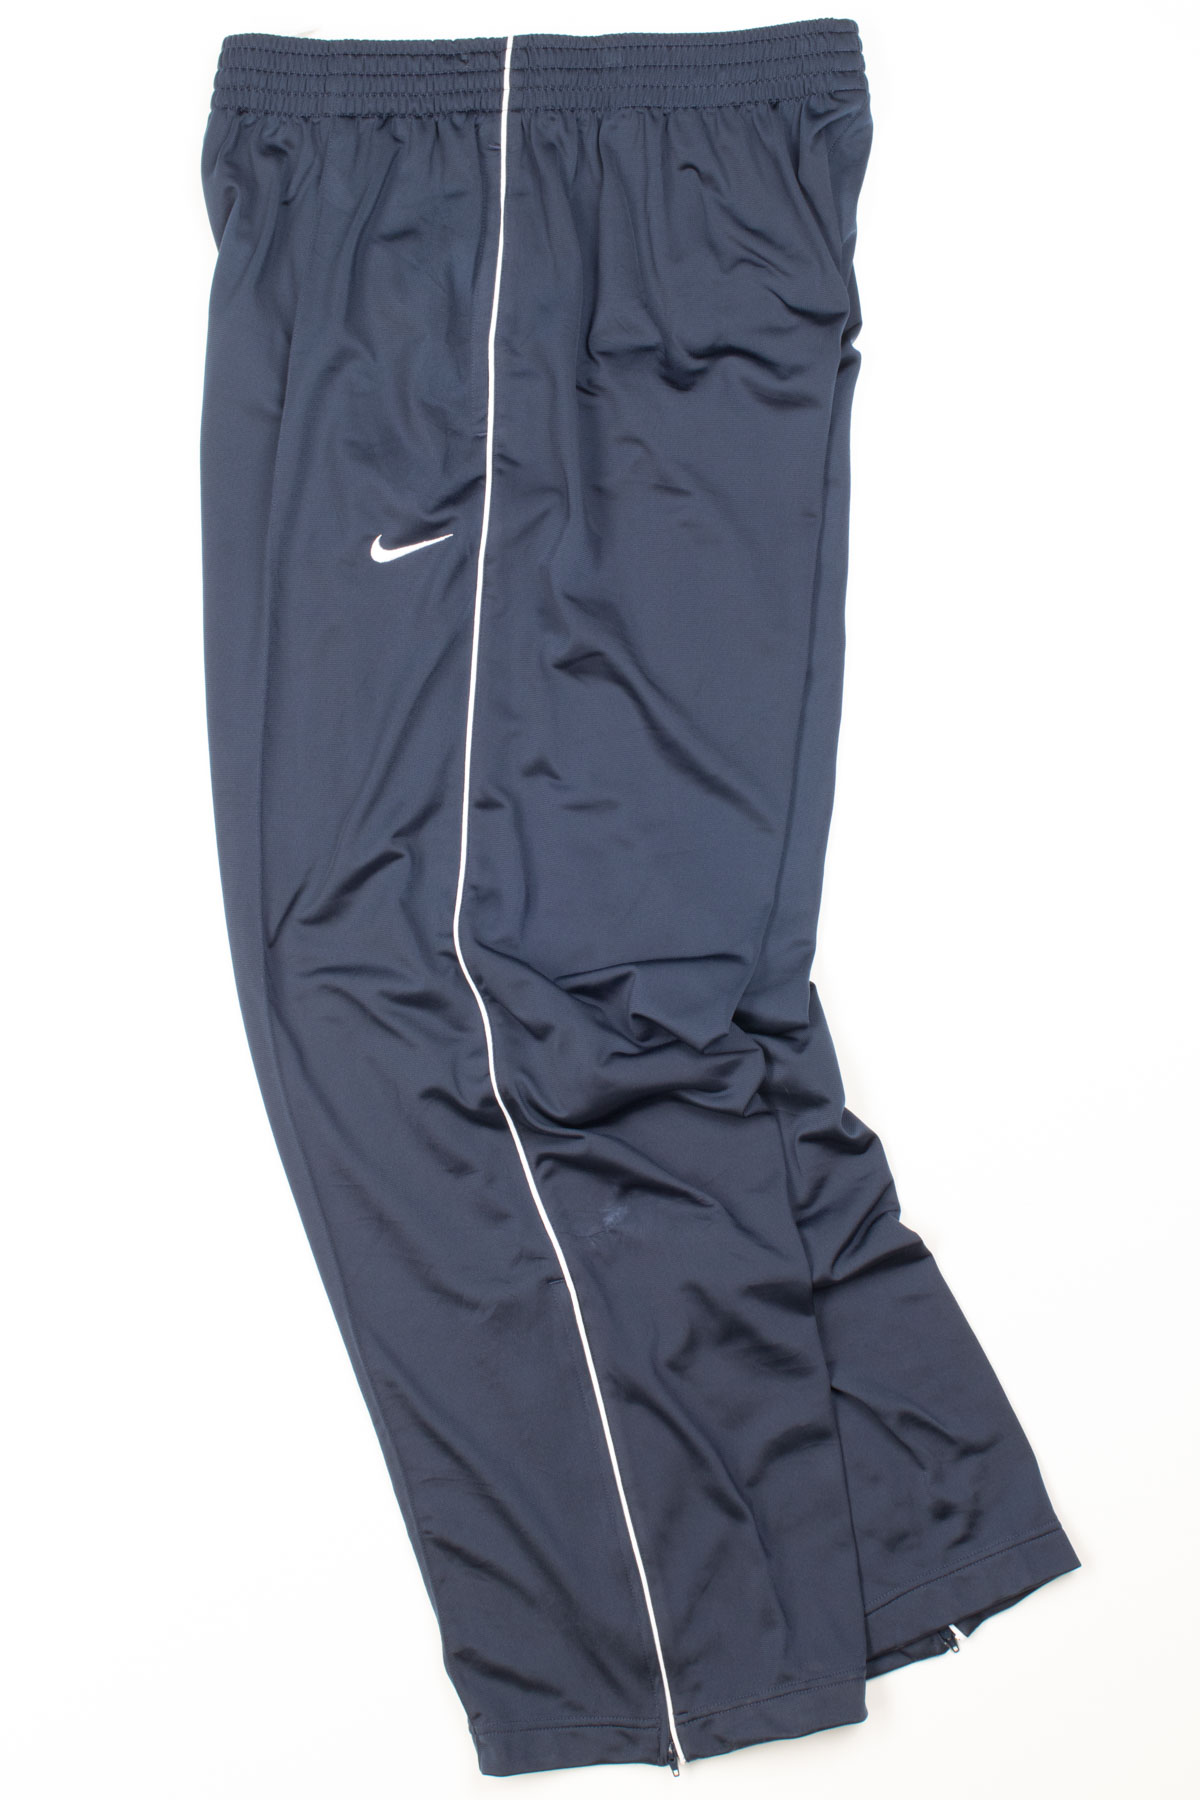 3a698f958e8c Navy Pleated Nike Track Pants - Ragstock